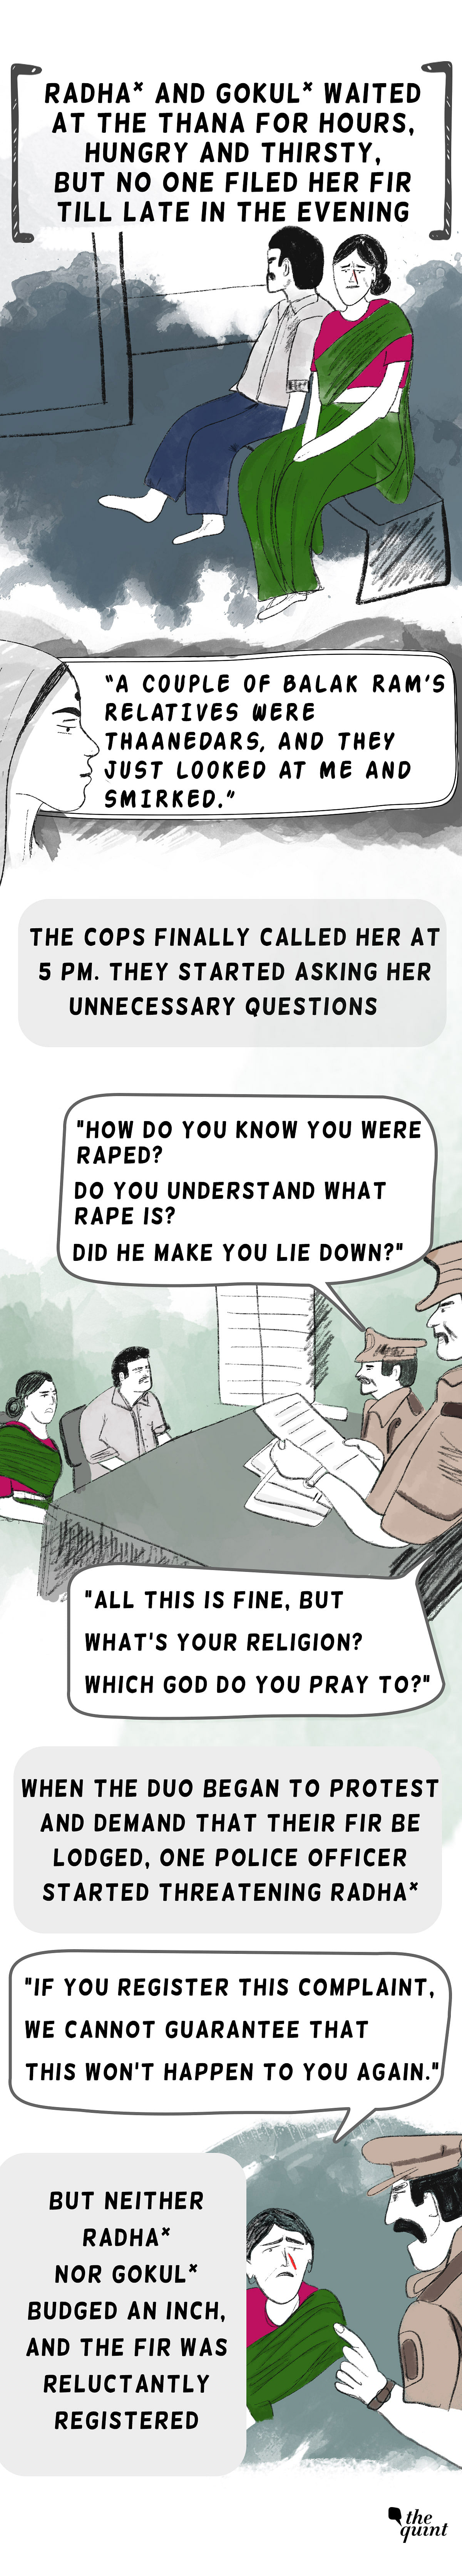 Sshh! She Was Raped, Called 'Lowly' & Subjected to Two-Finger Test